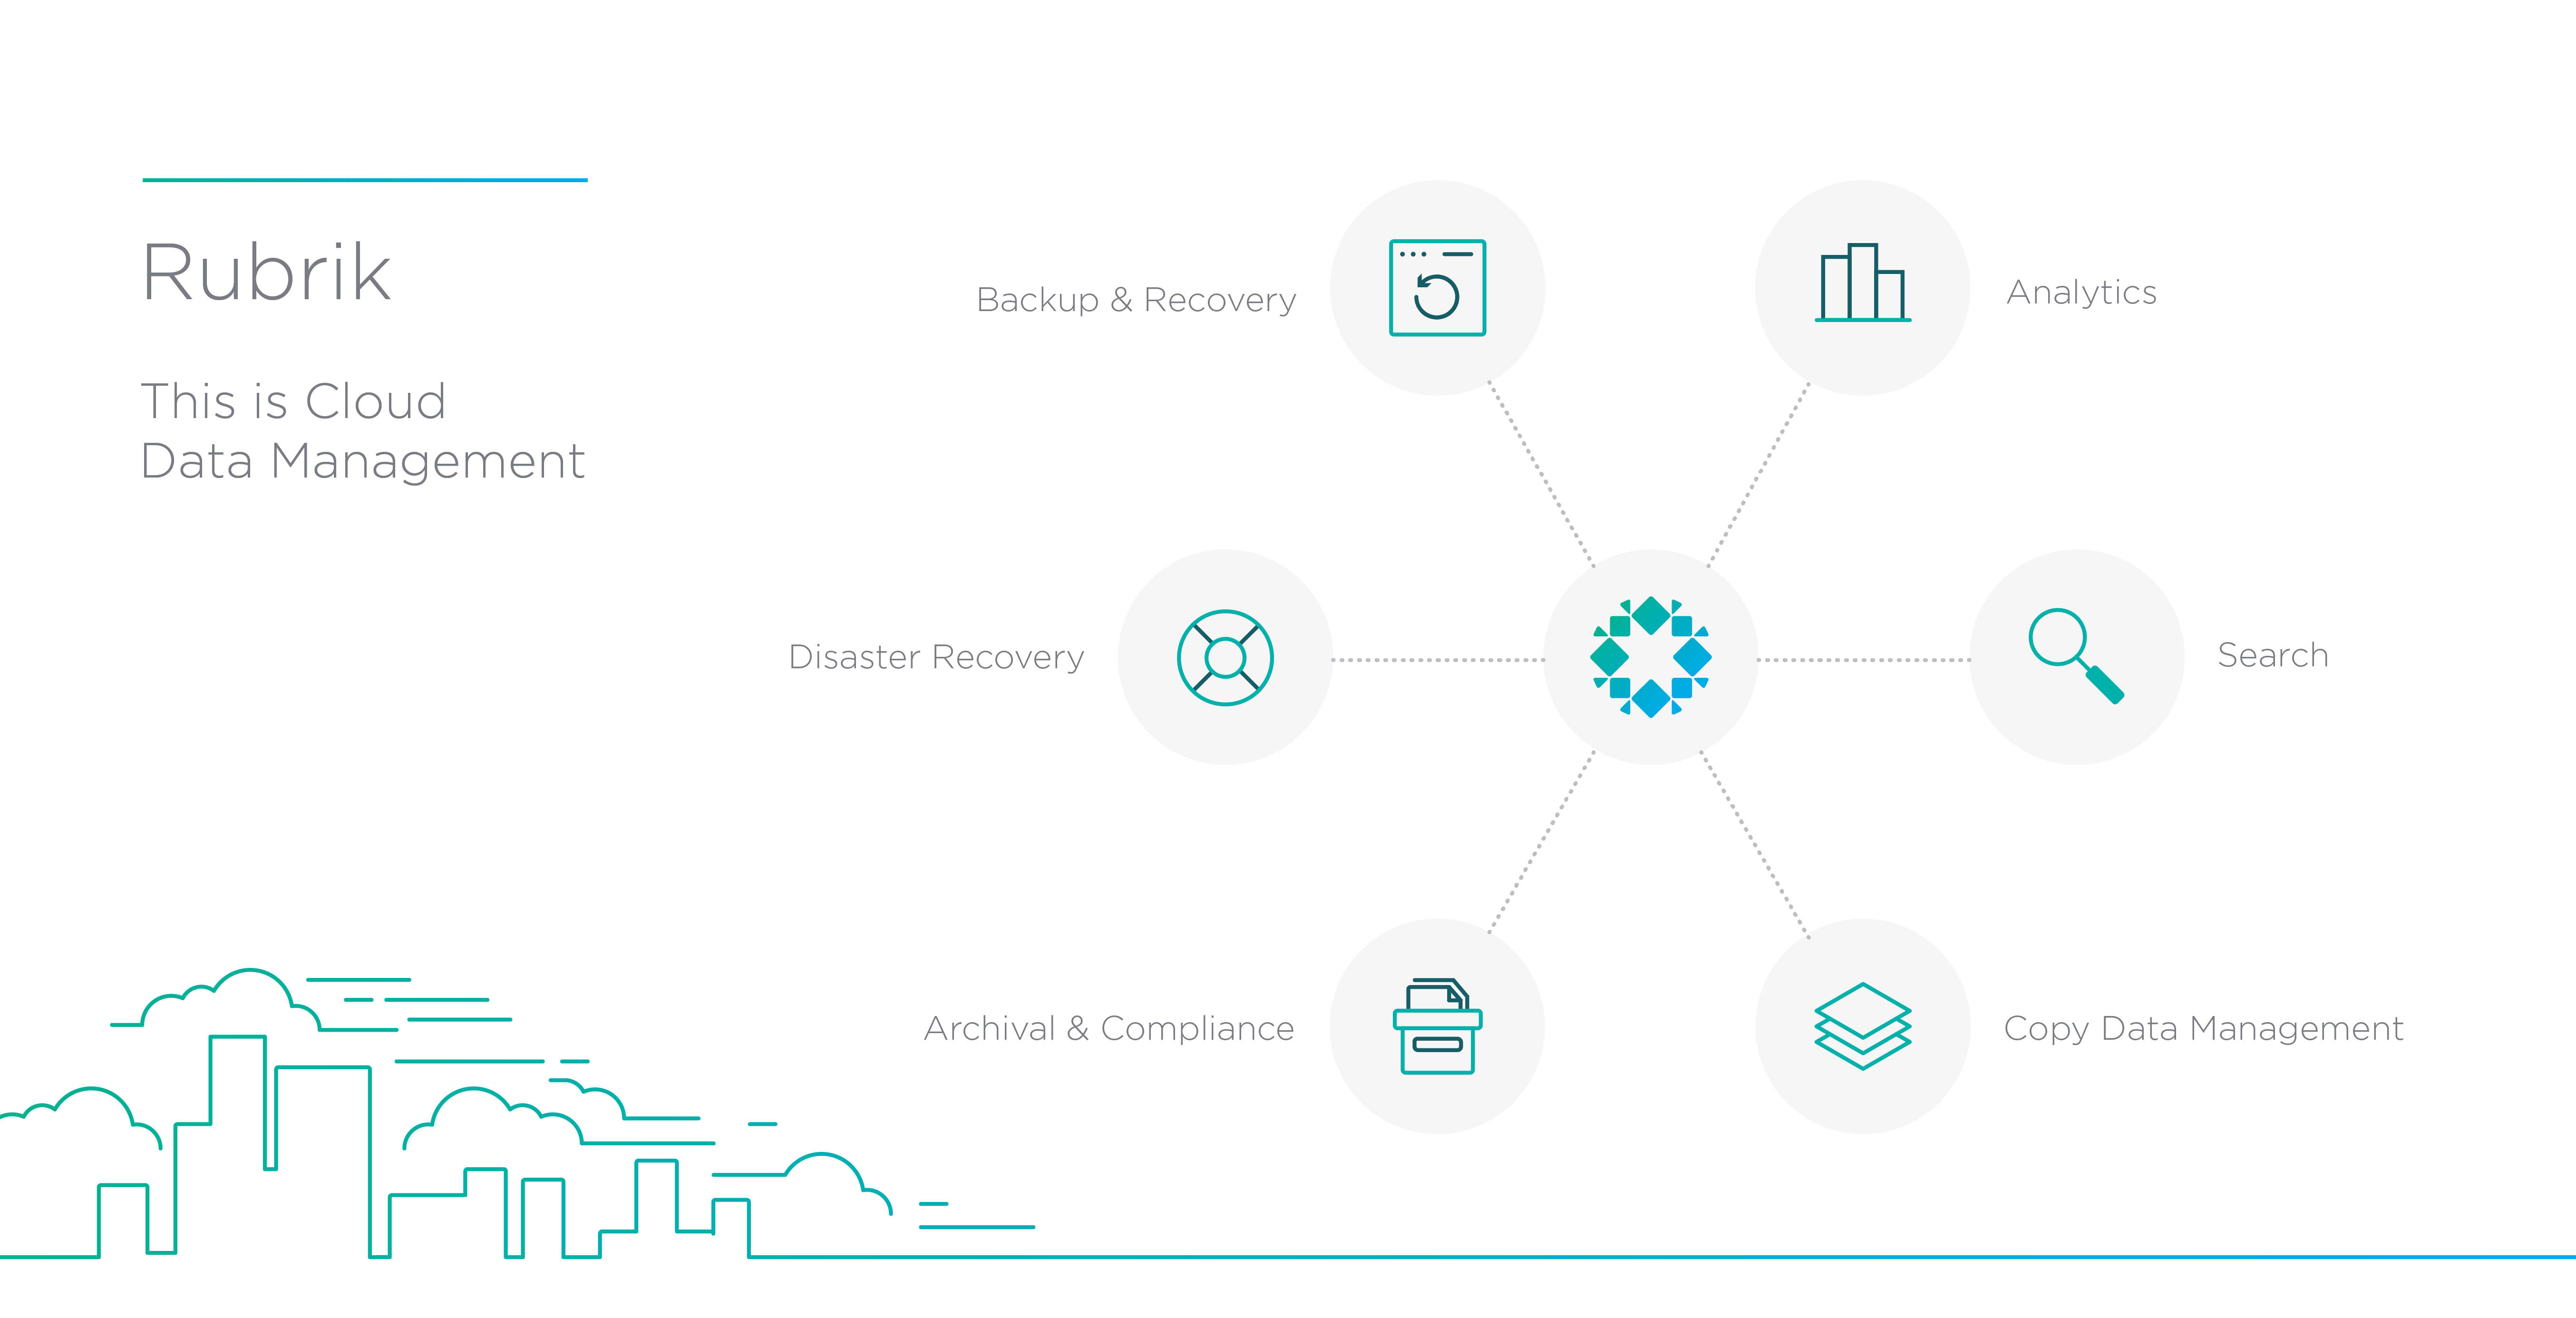 Rubrik Firefly Cloud Data Management